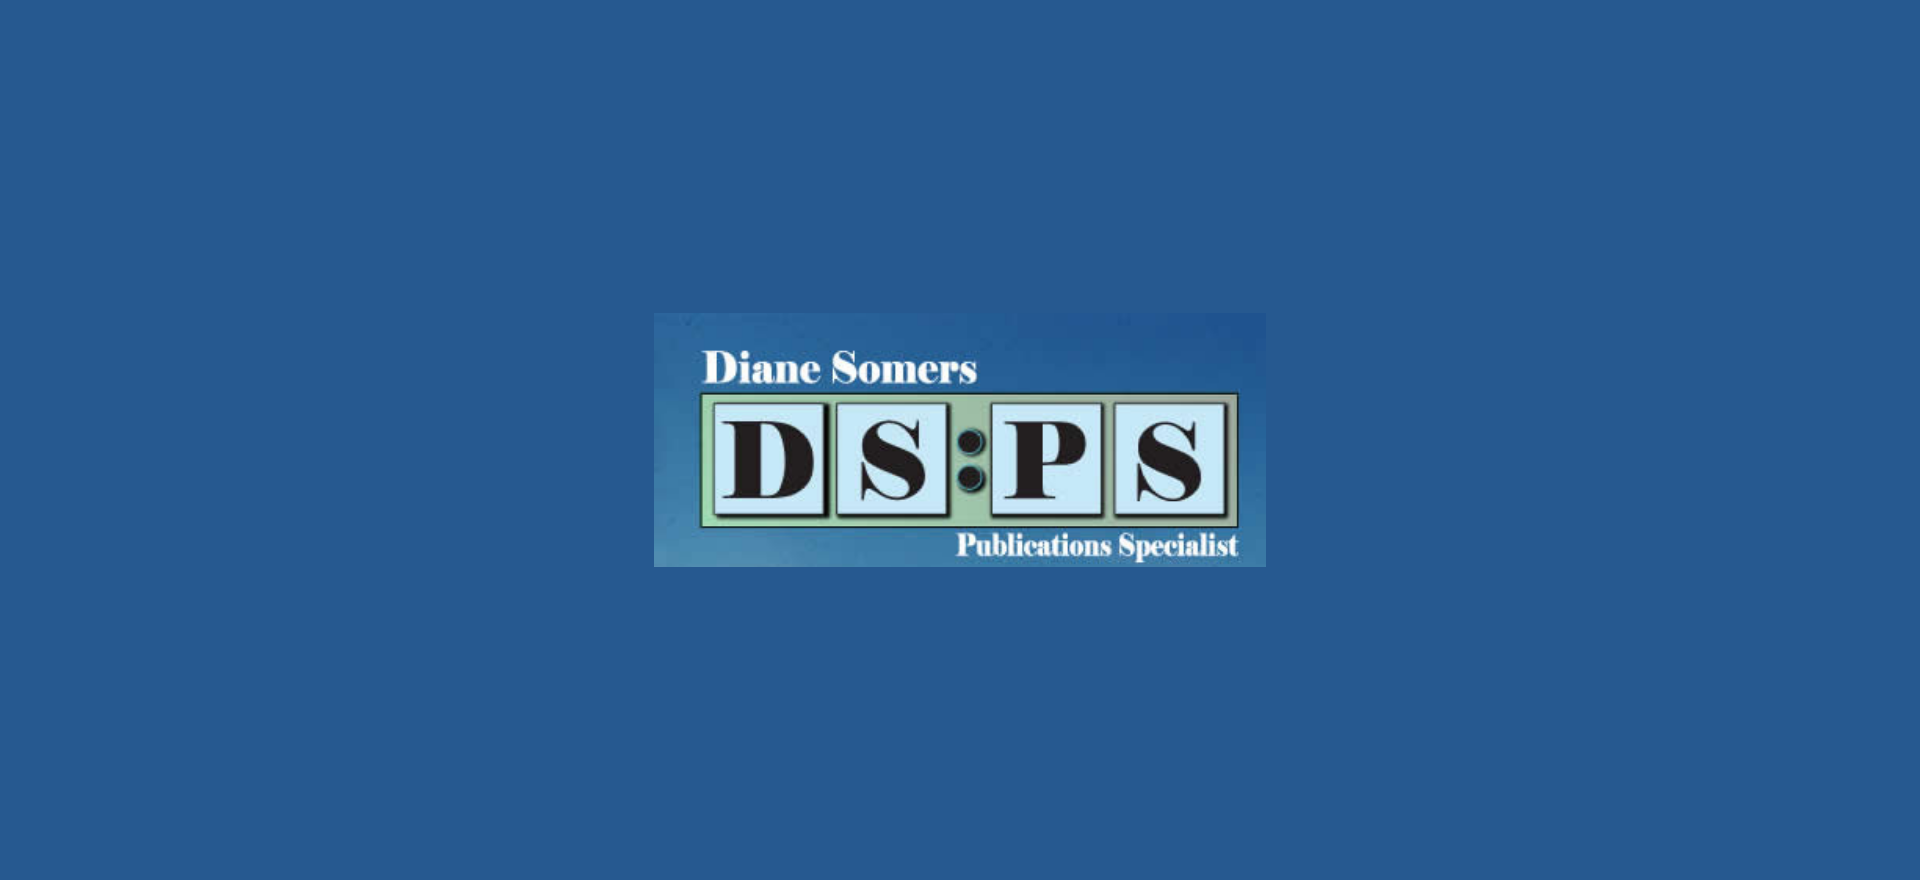 DS:PS Diane Somers Publication Specialist